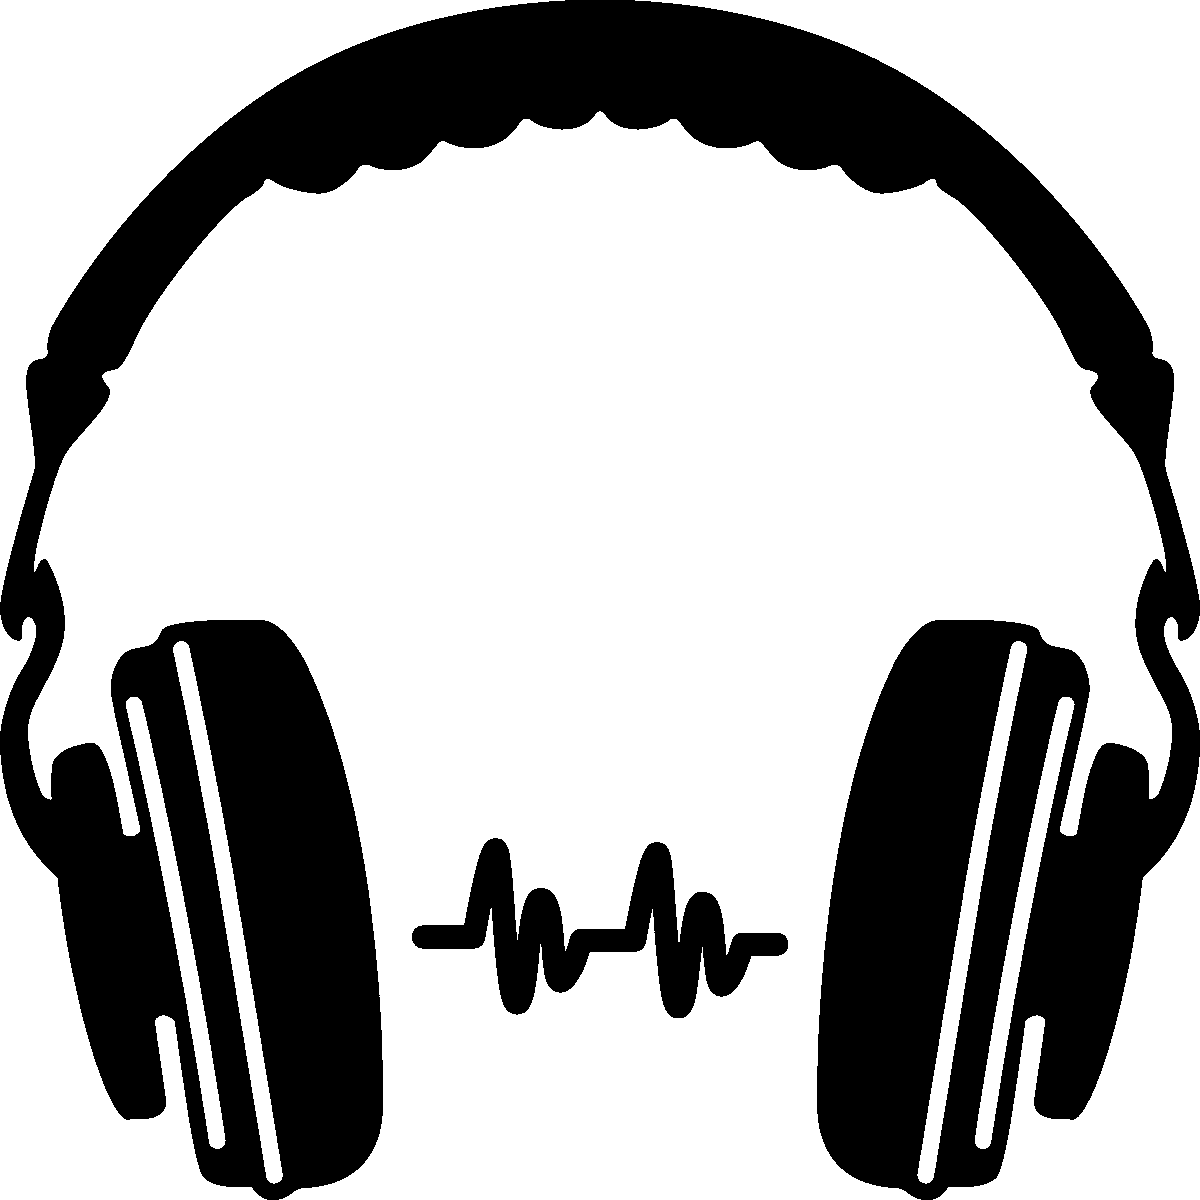 Headphone at getdrawings com. Headphones silhouette png clip art transparent stock